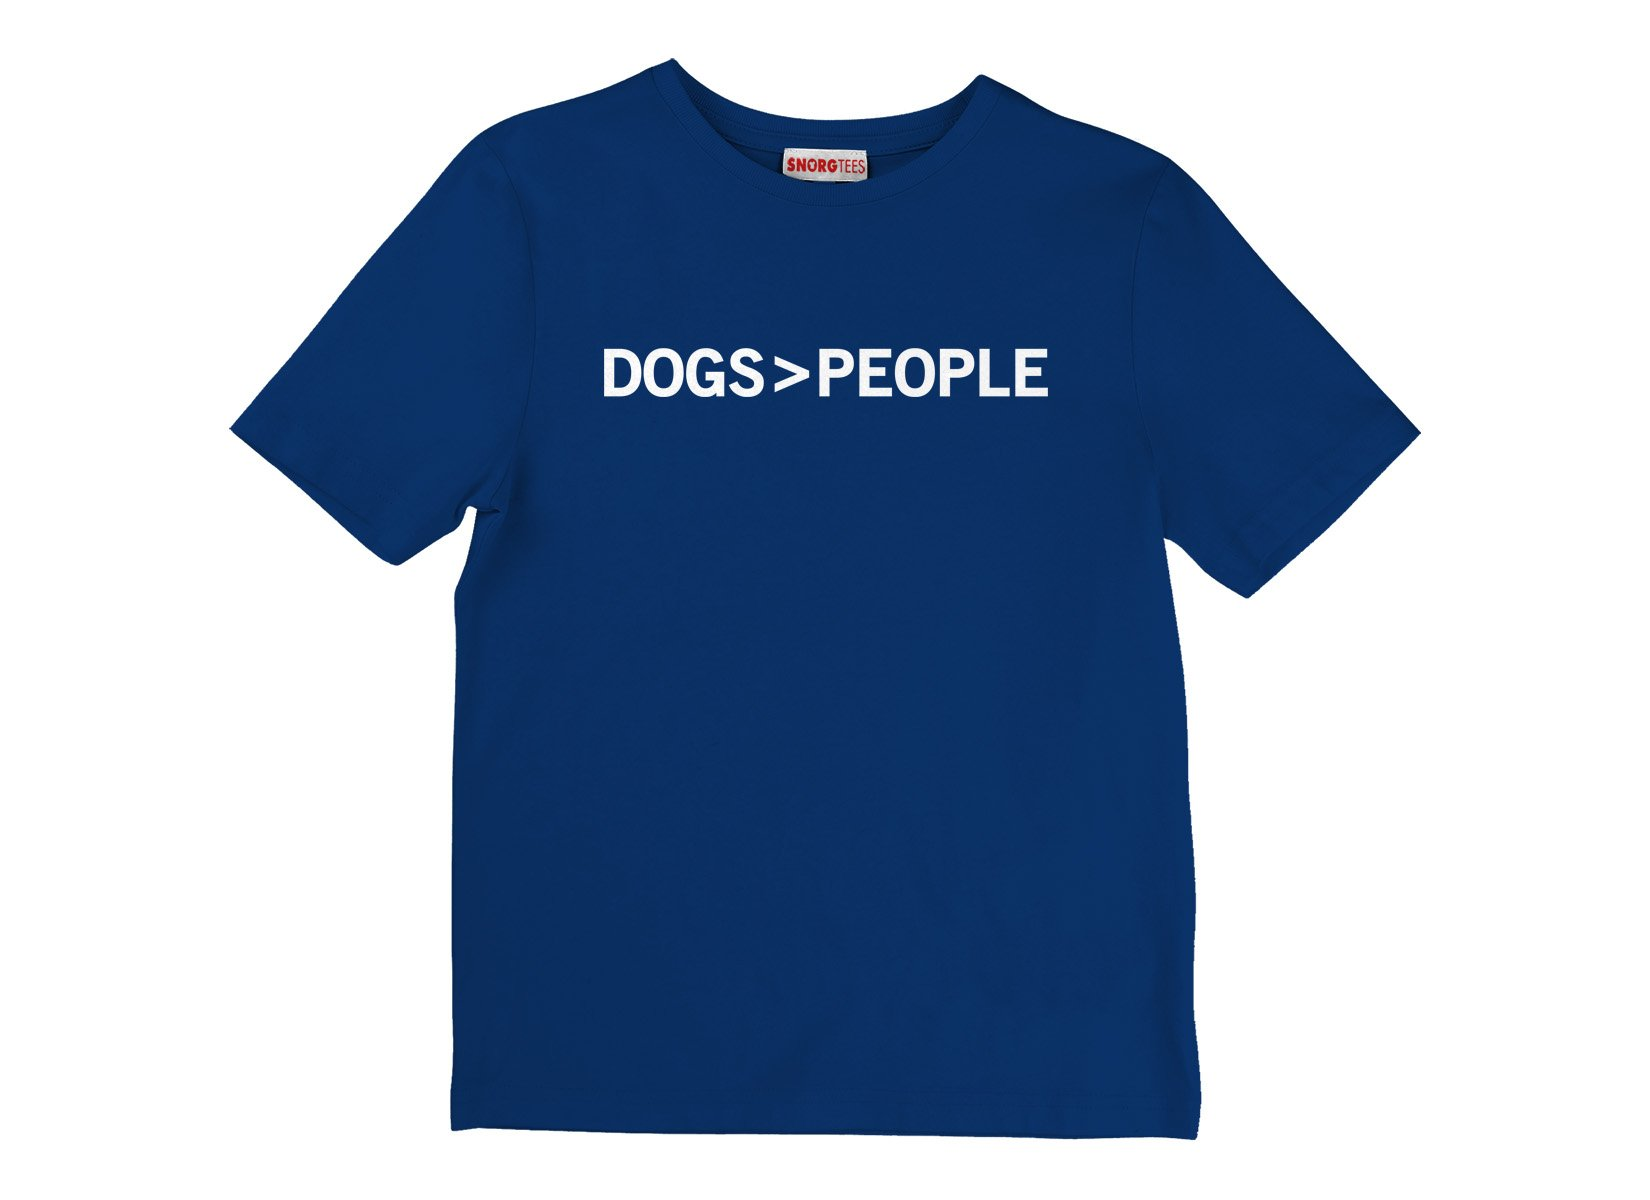 Dogs>People on Kids T-Shirt